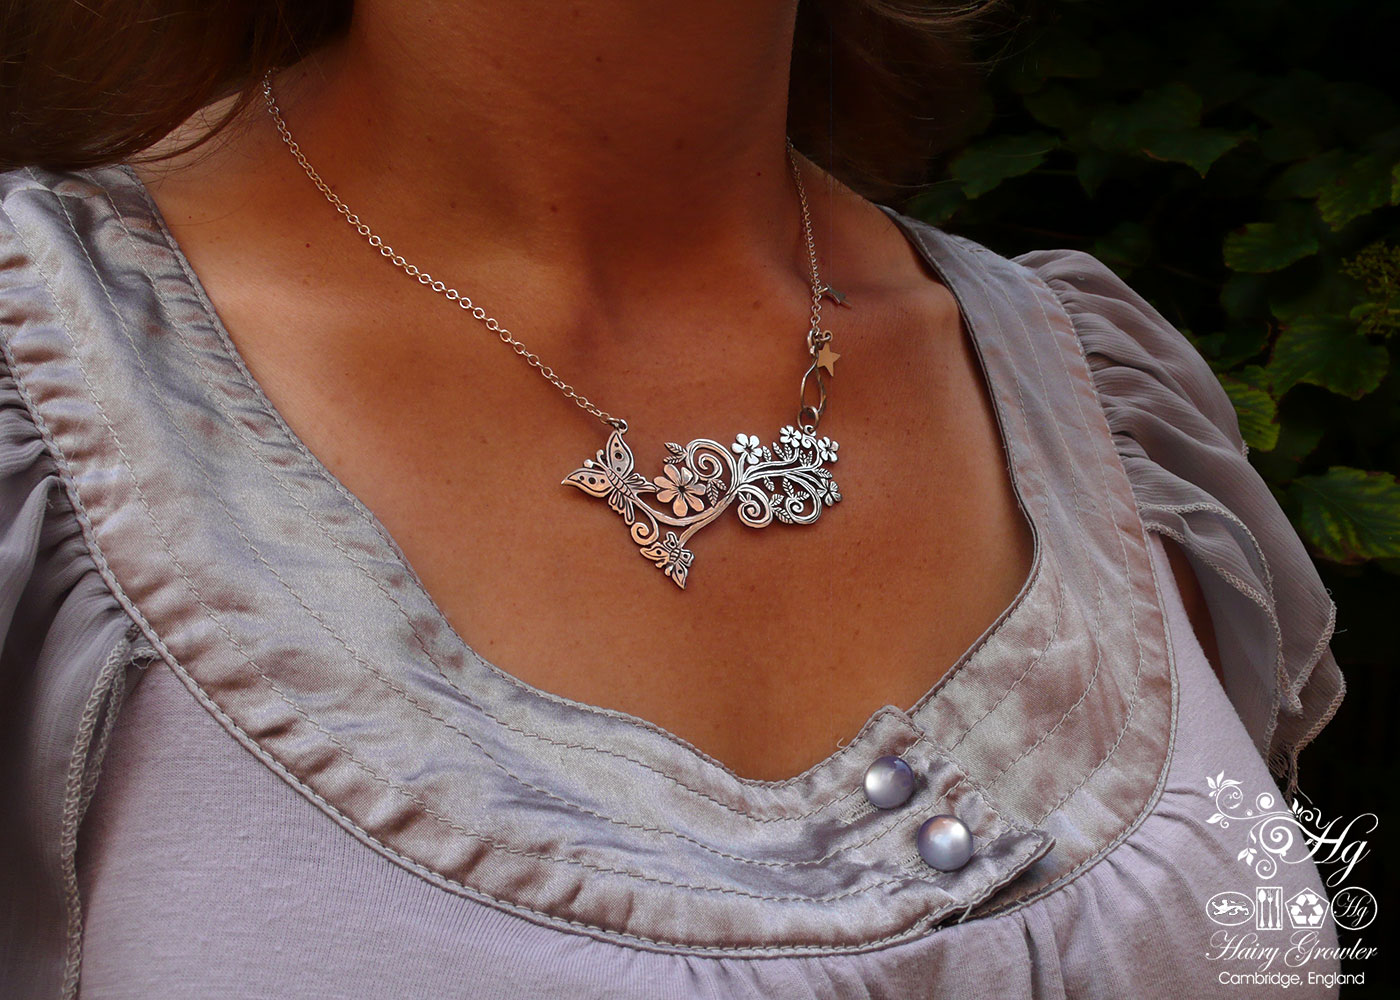 Handcrafted and recycled sterling silver crown coin butterfly necklace